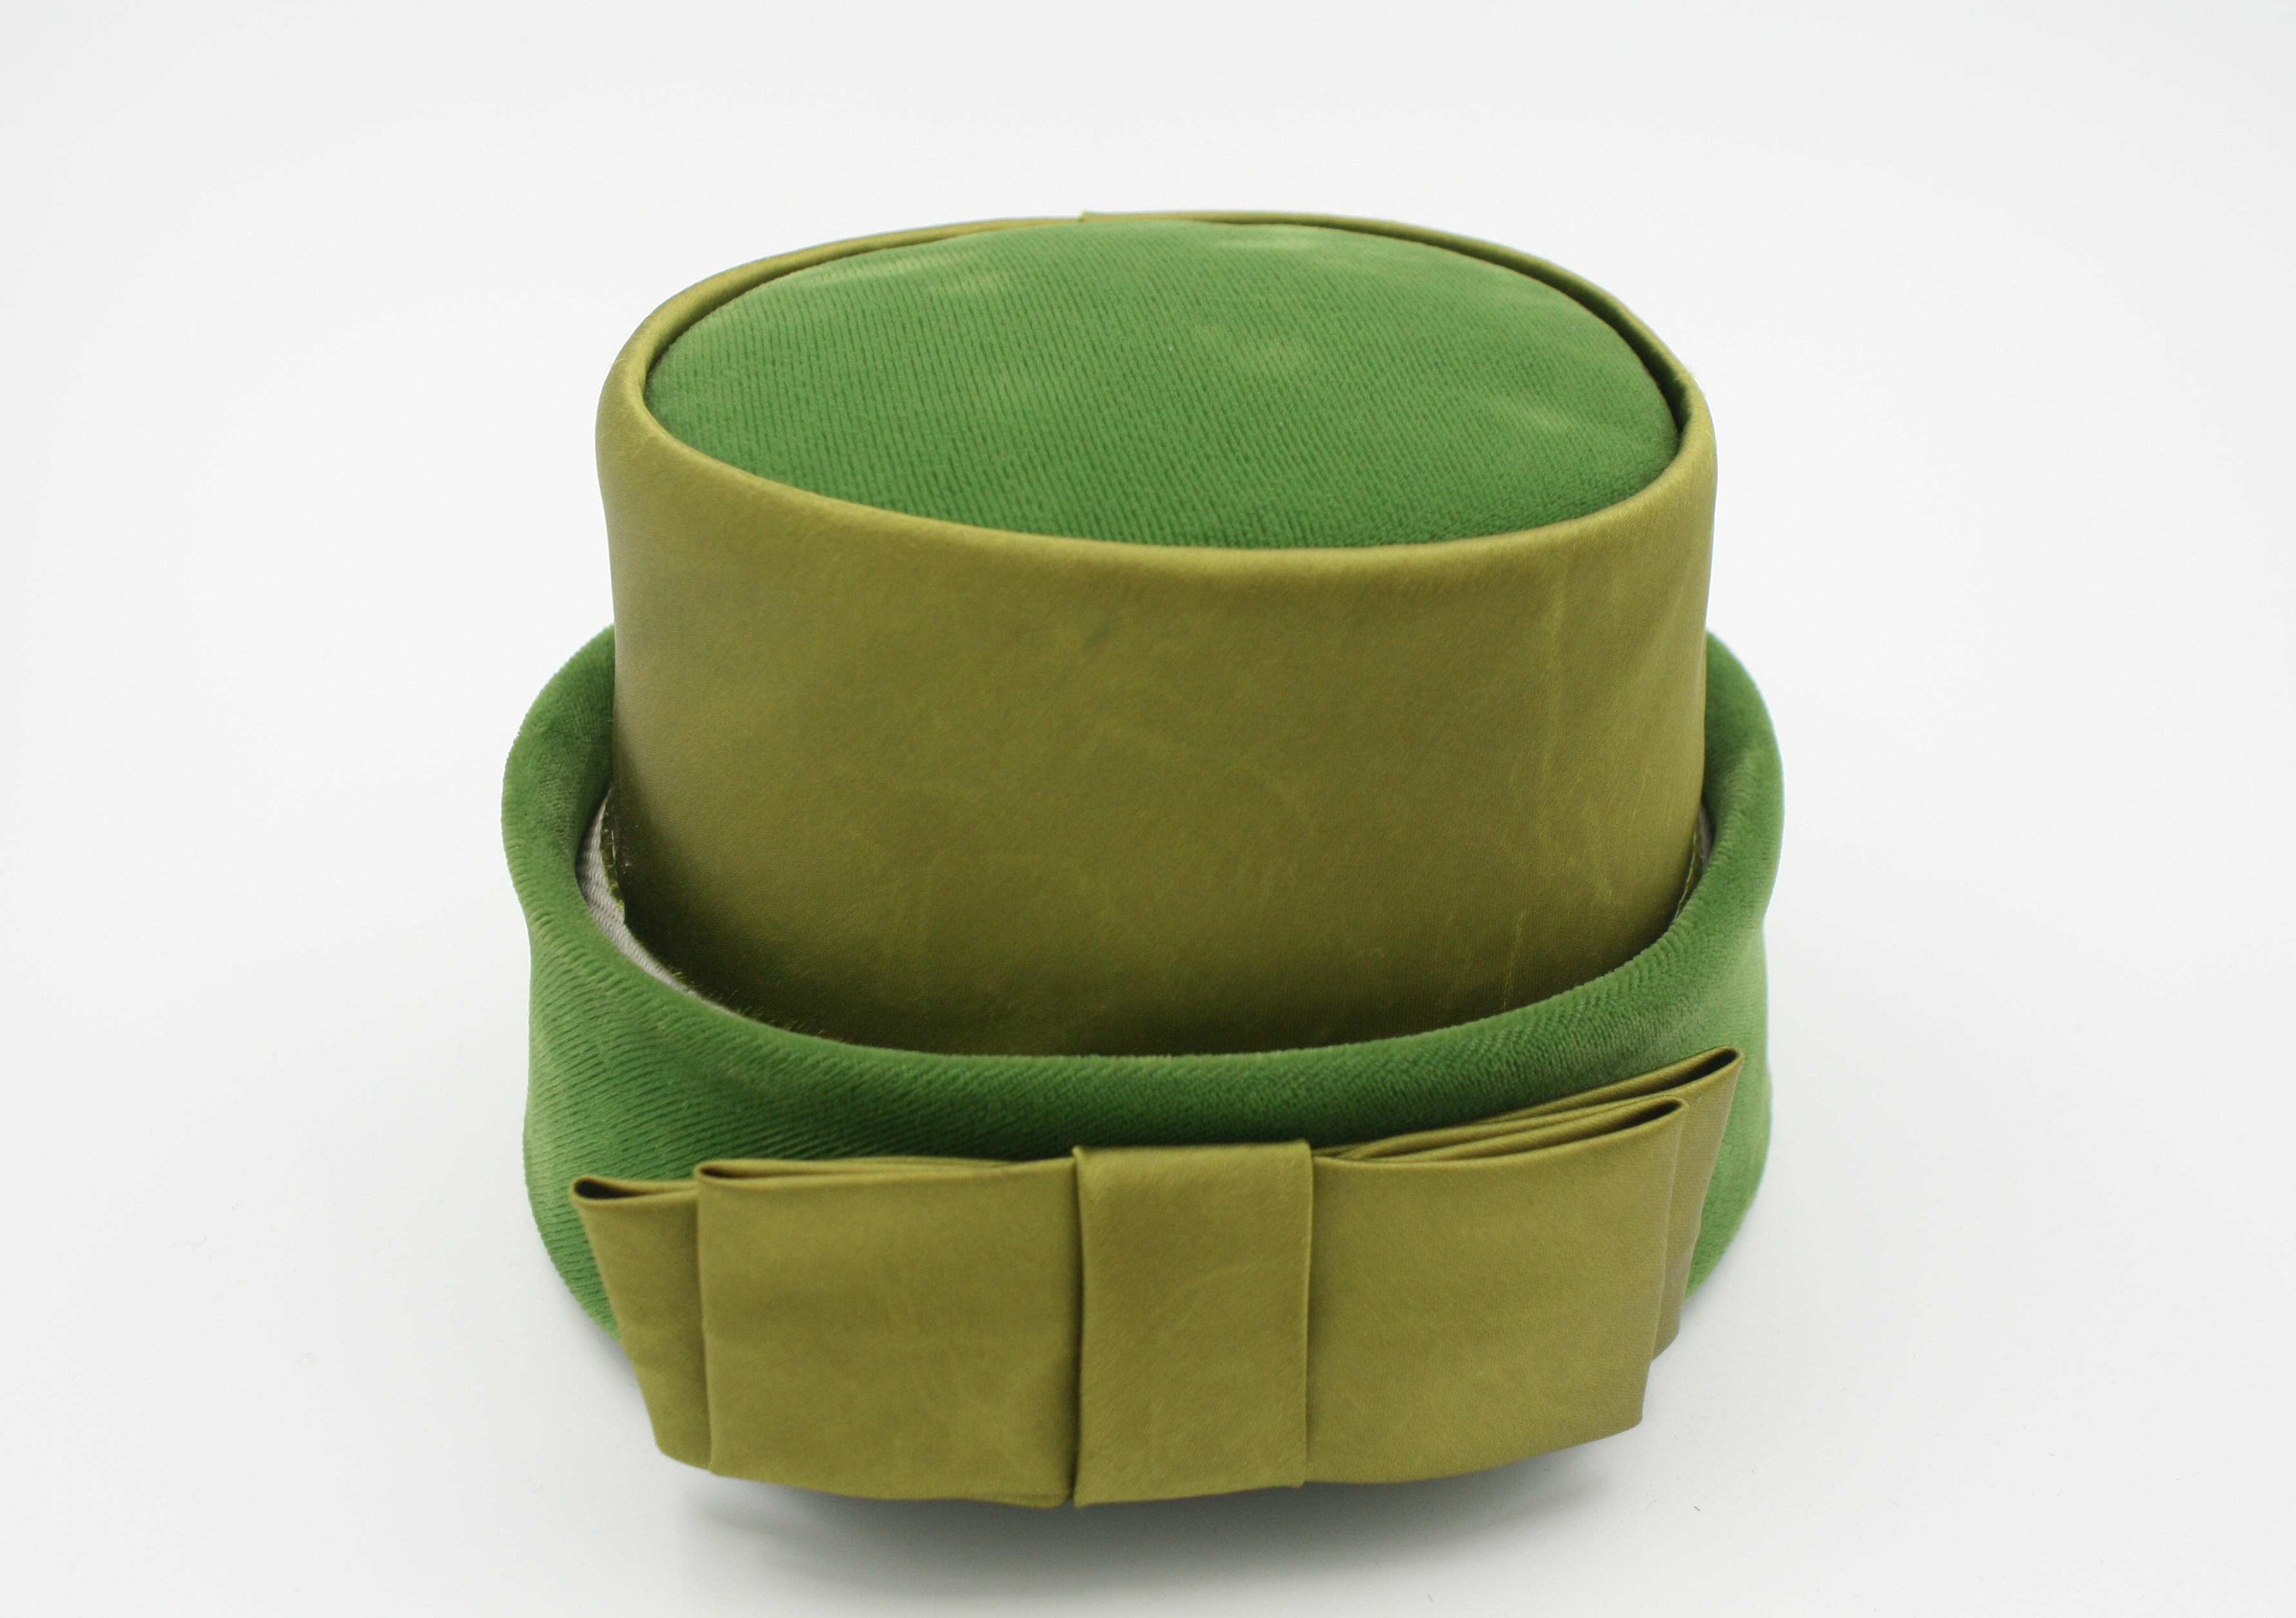 A green velvet and lime green satin hat from circa 1950's, this hat features a large lime green satin bow at the front. Lined in green satin.